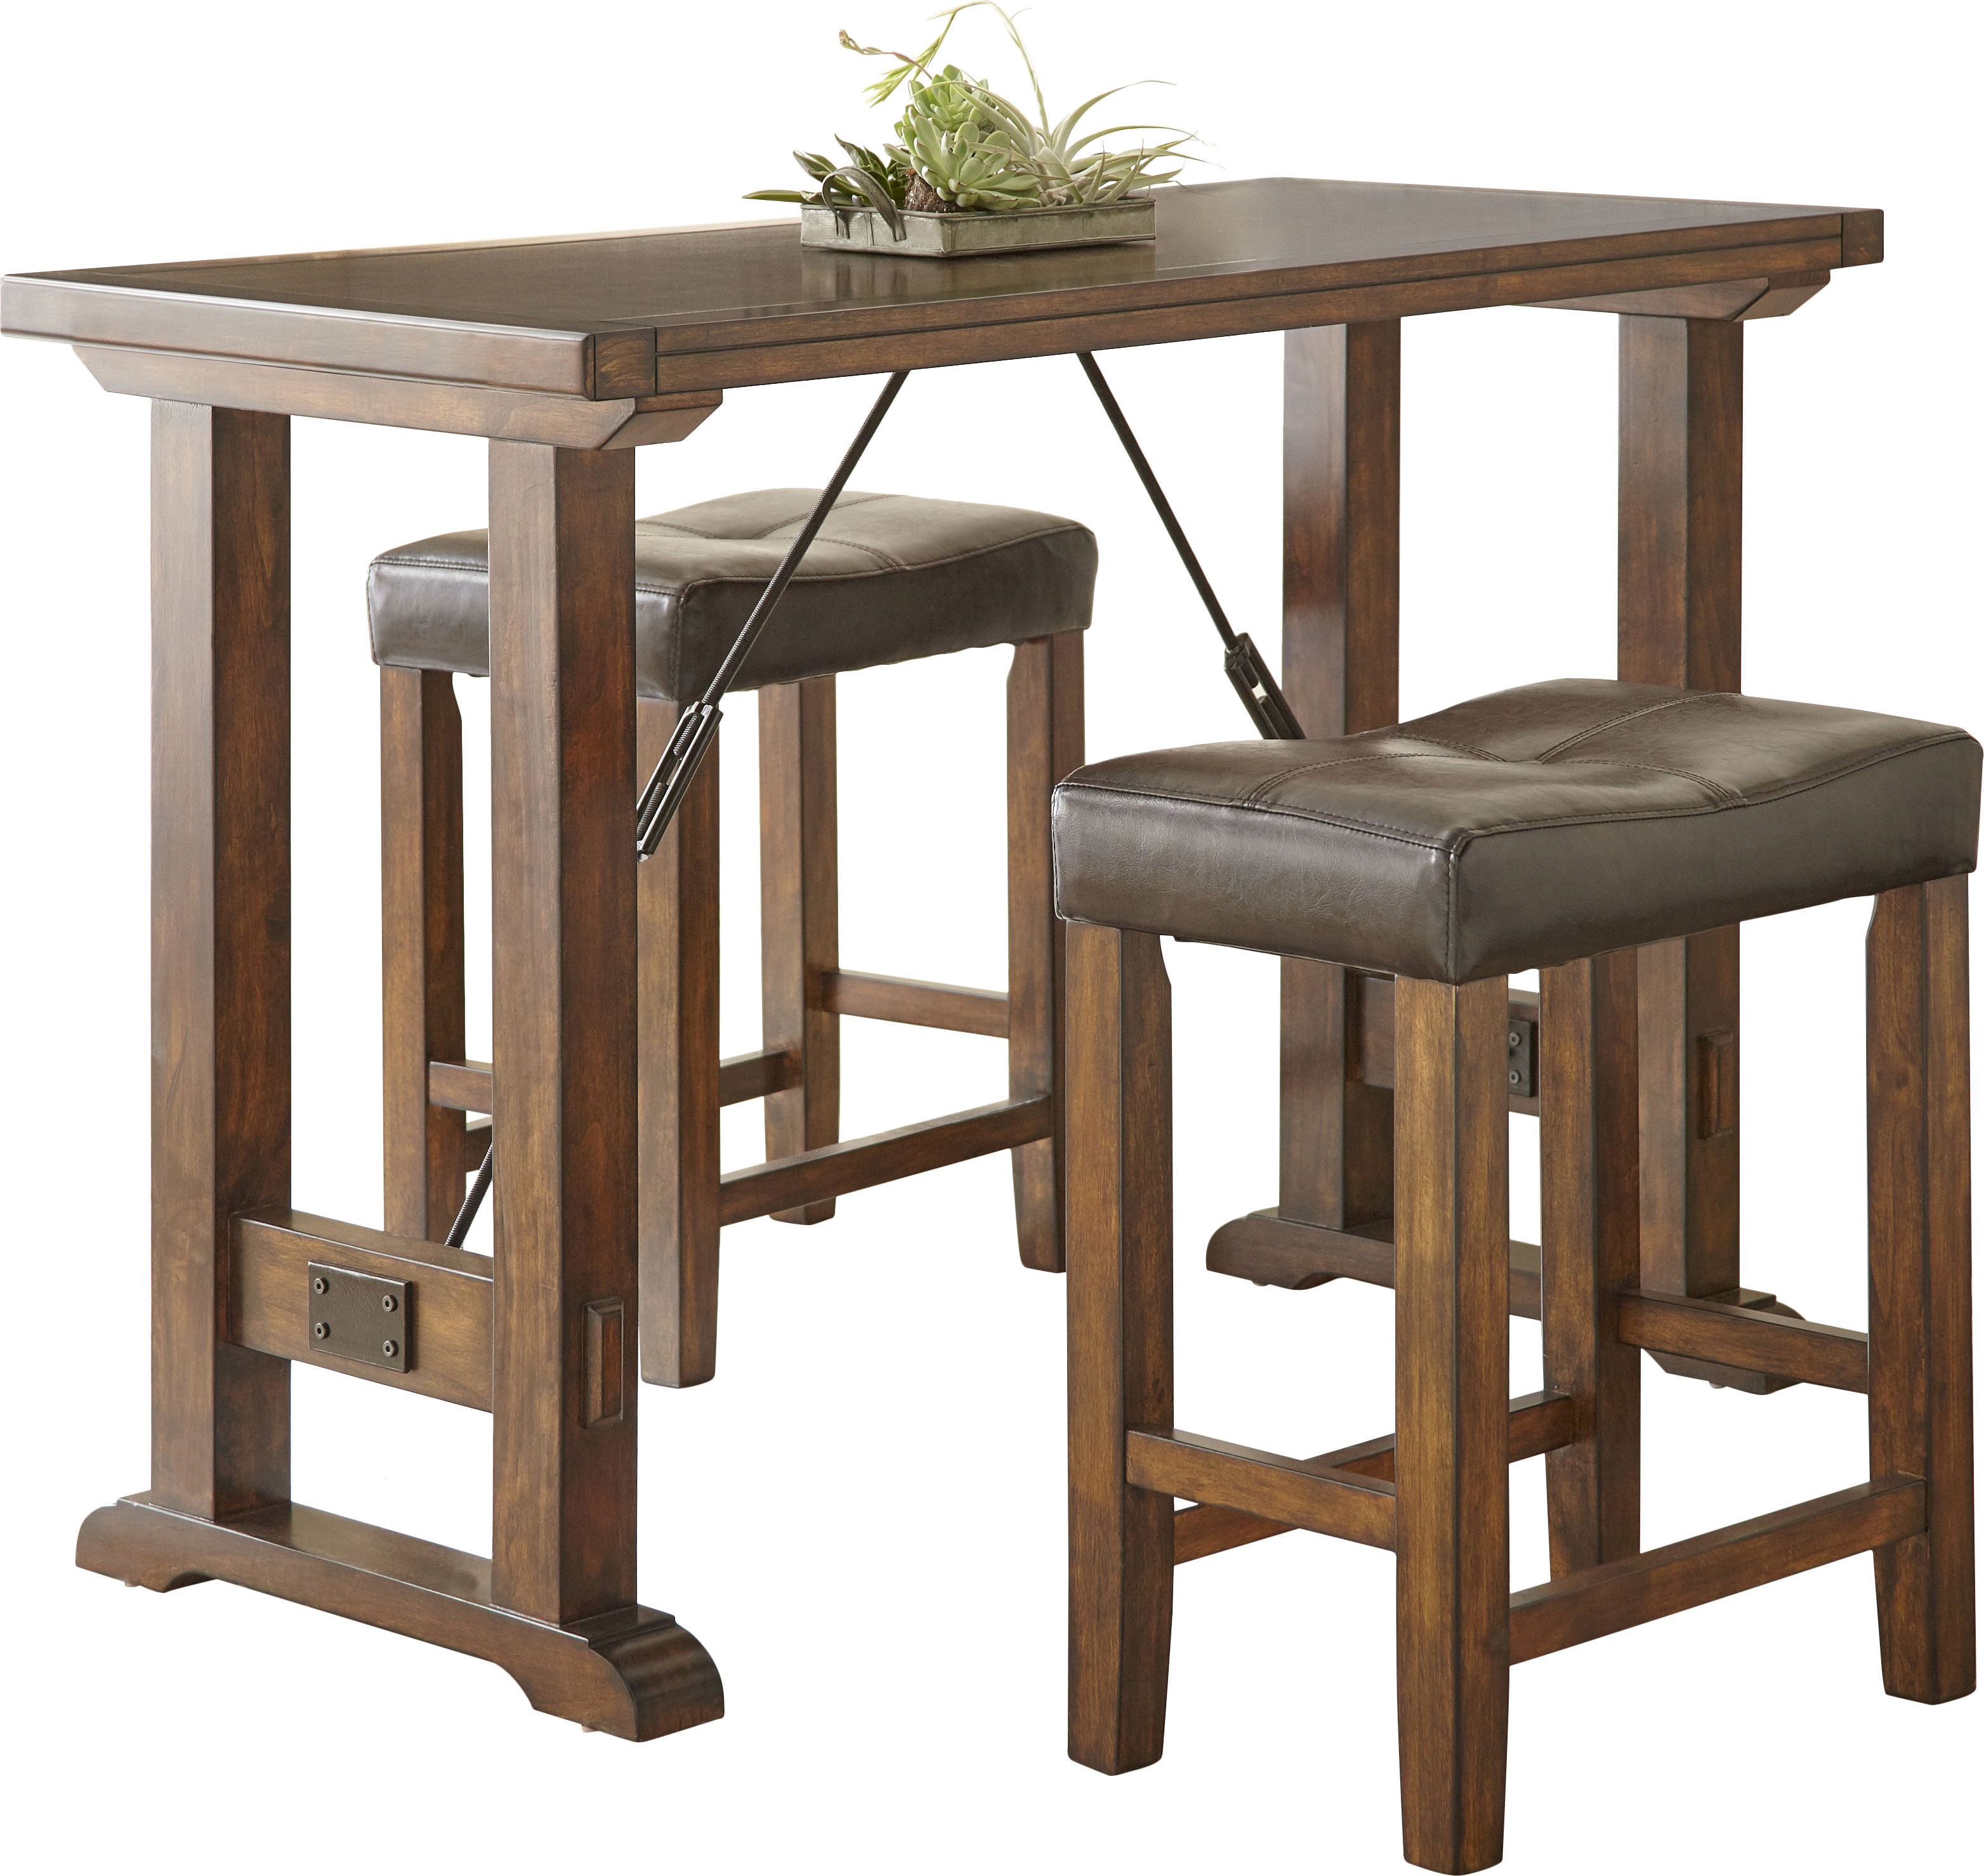 Best And Newest Norrell 3 Piece Counter Height Dining Set Inside Penelope 3 Piece Counter Height Wood Dining Sets (Gallery 5 of 20)